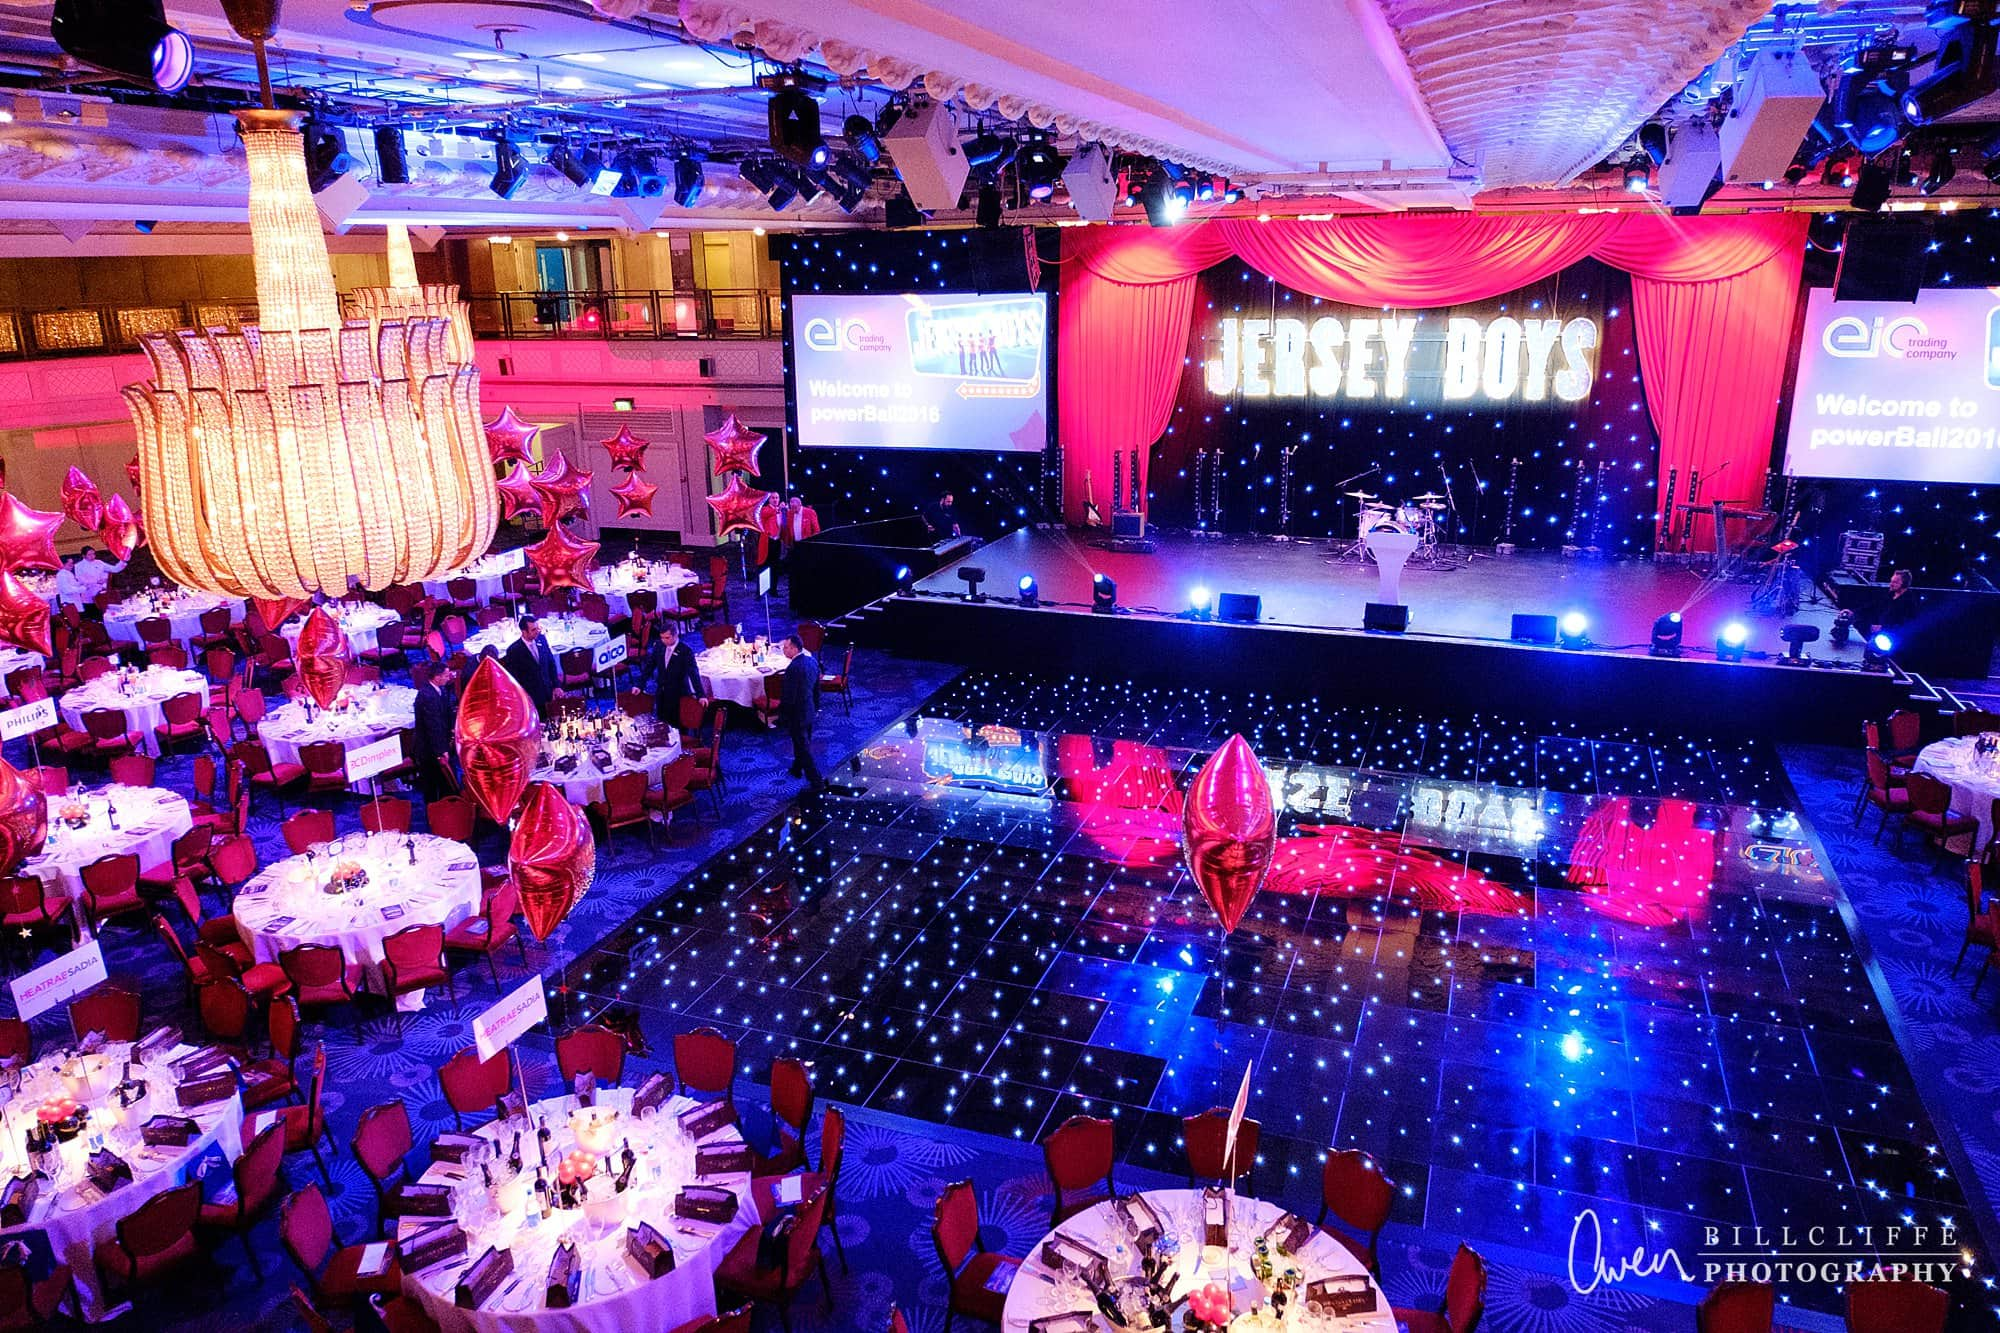 london event photographer park lane pb 001 - A Luxury Ball at Grosvenor House Park Lane